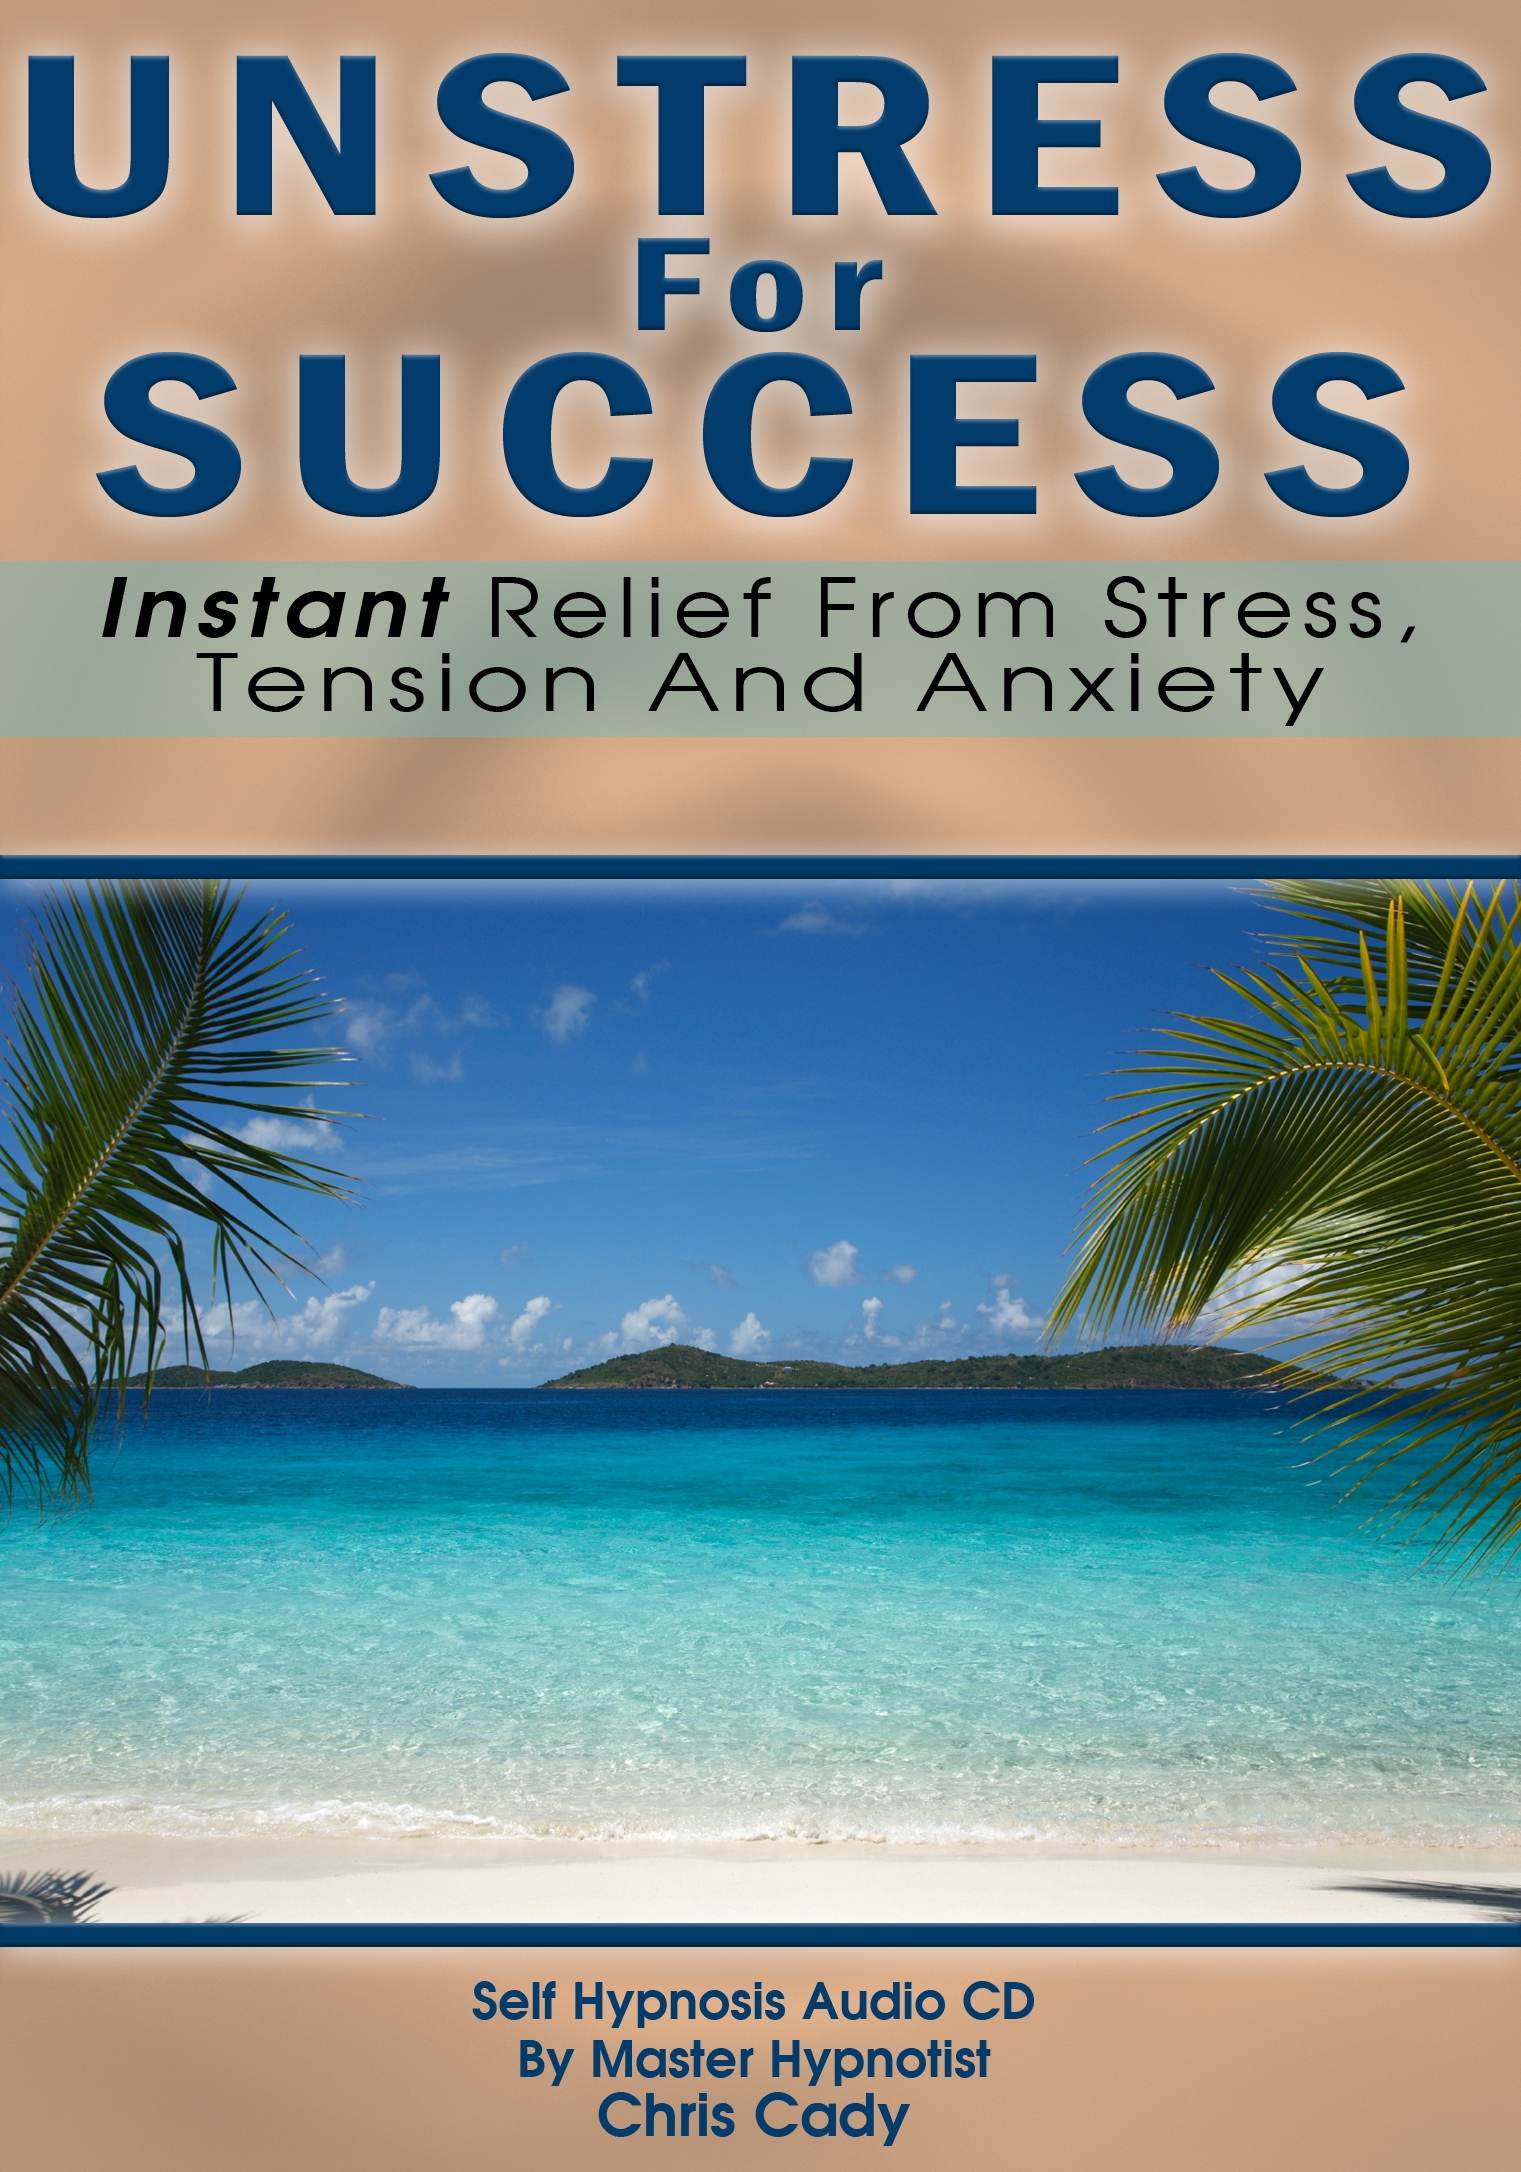 unstress for success with hypnosis cd mp3 download program